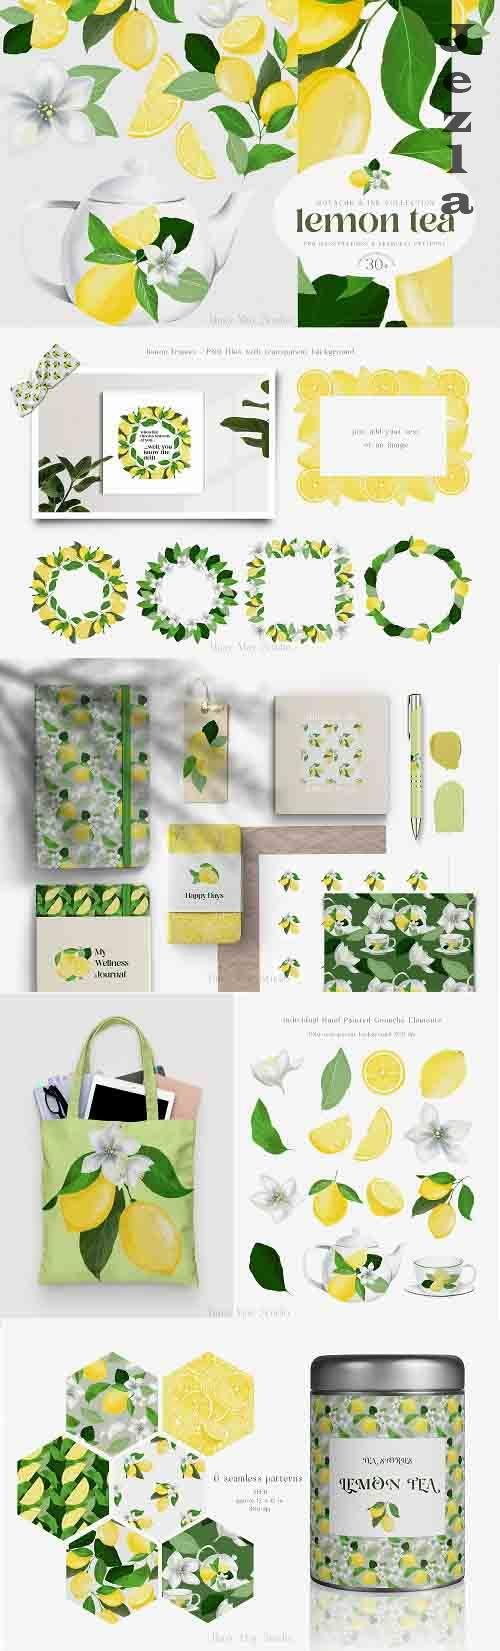 Lemon Gouache Illustrations and Seamless Patterns Summer PNG - 1353437